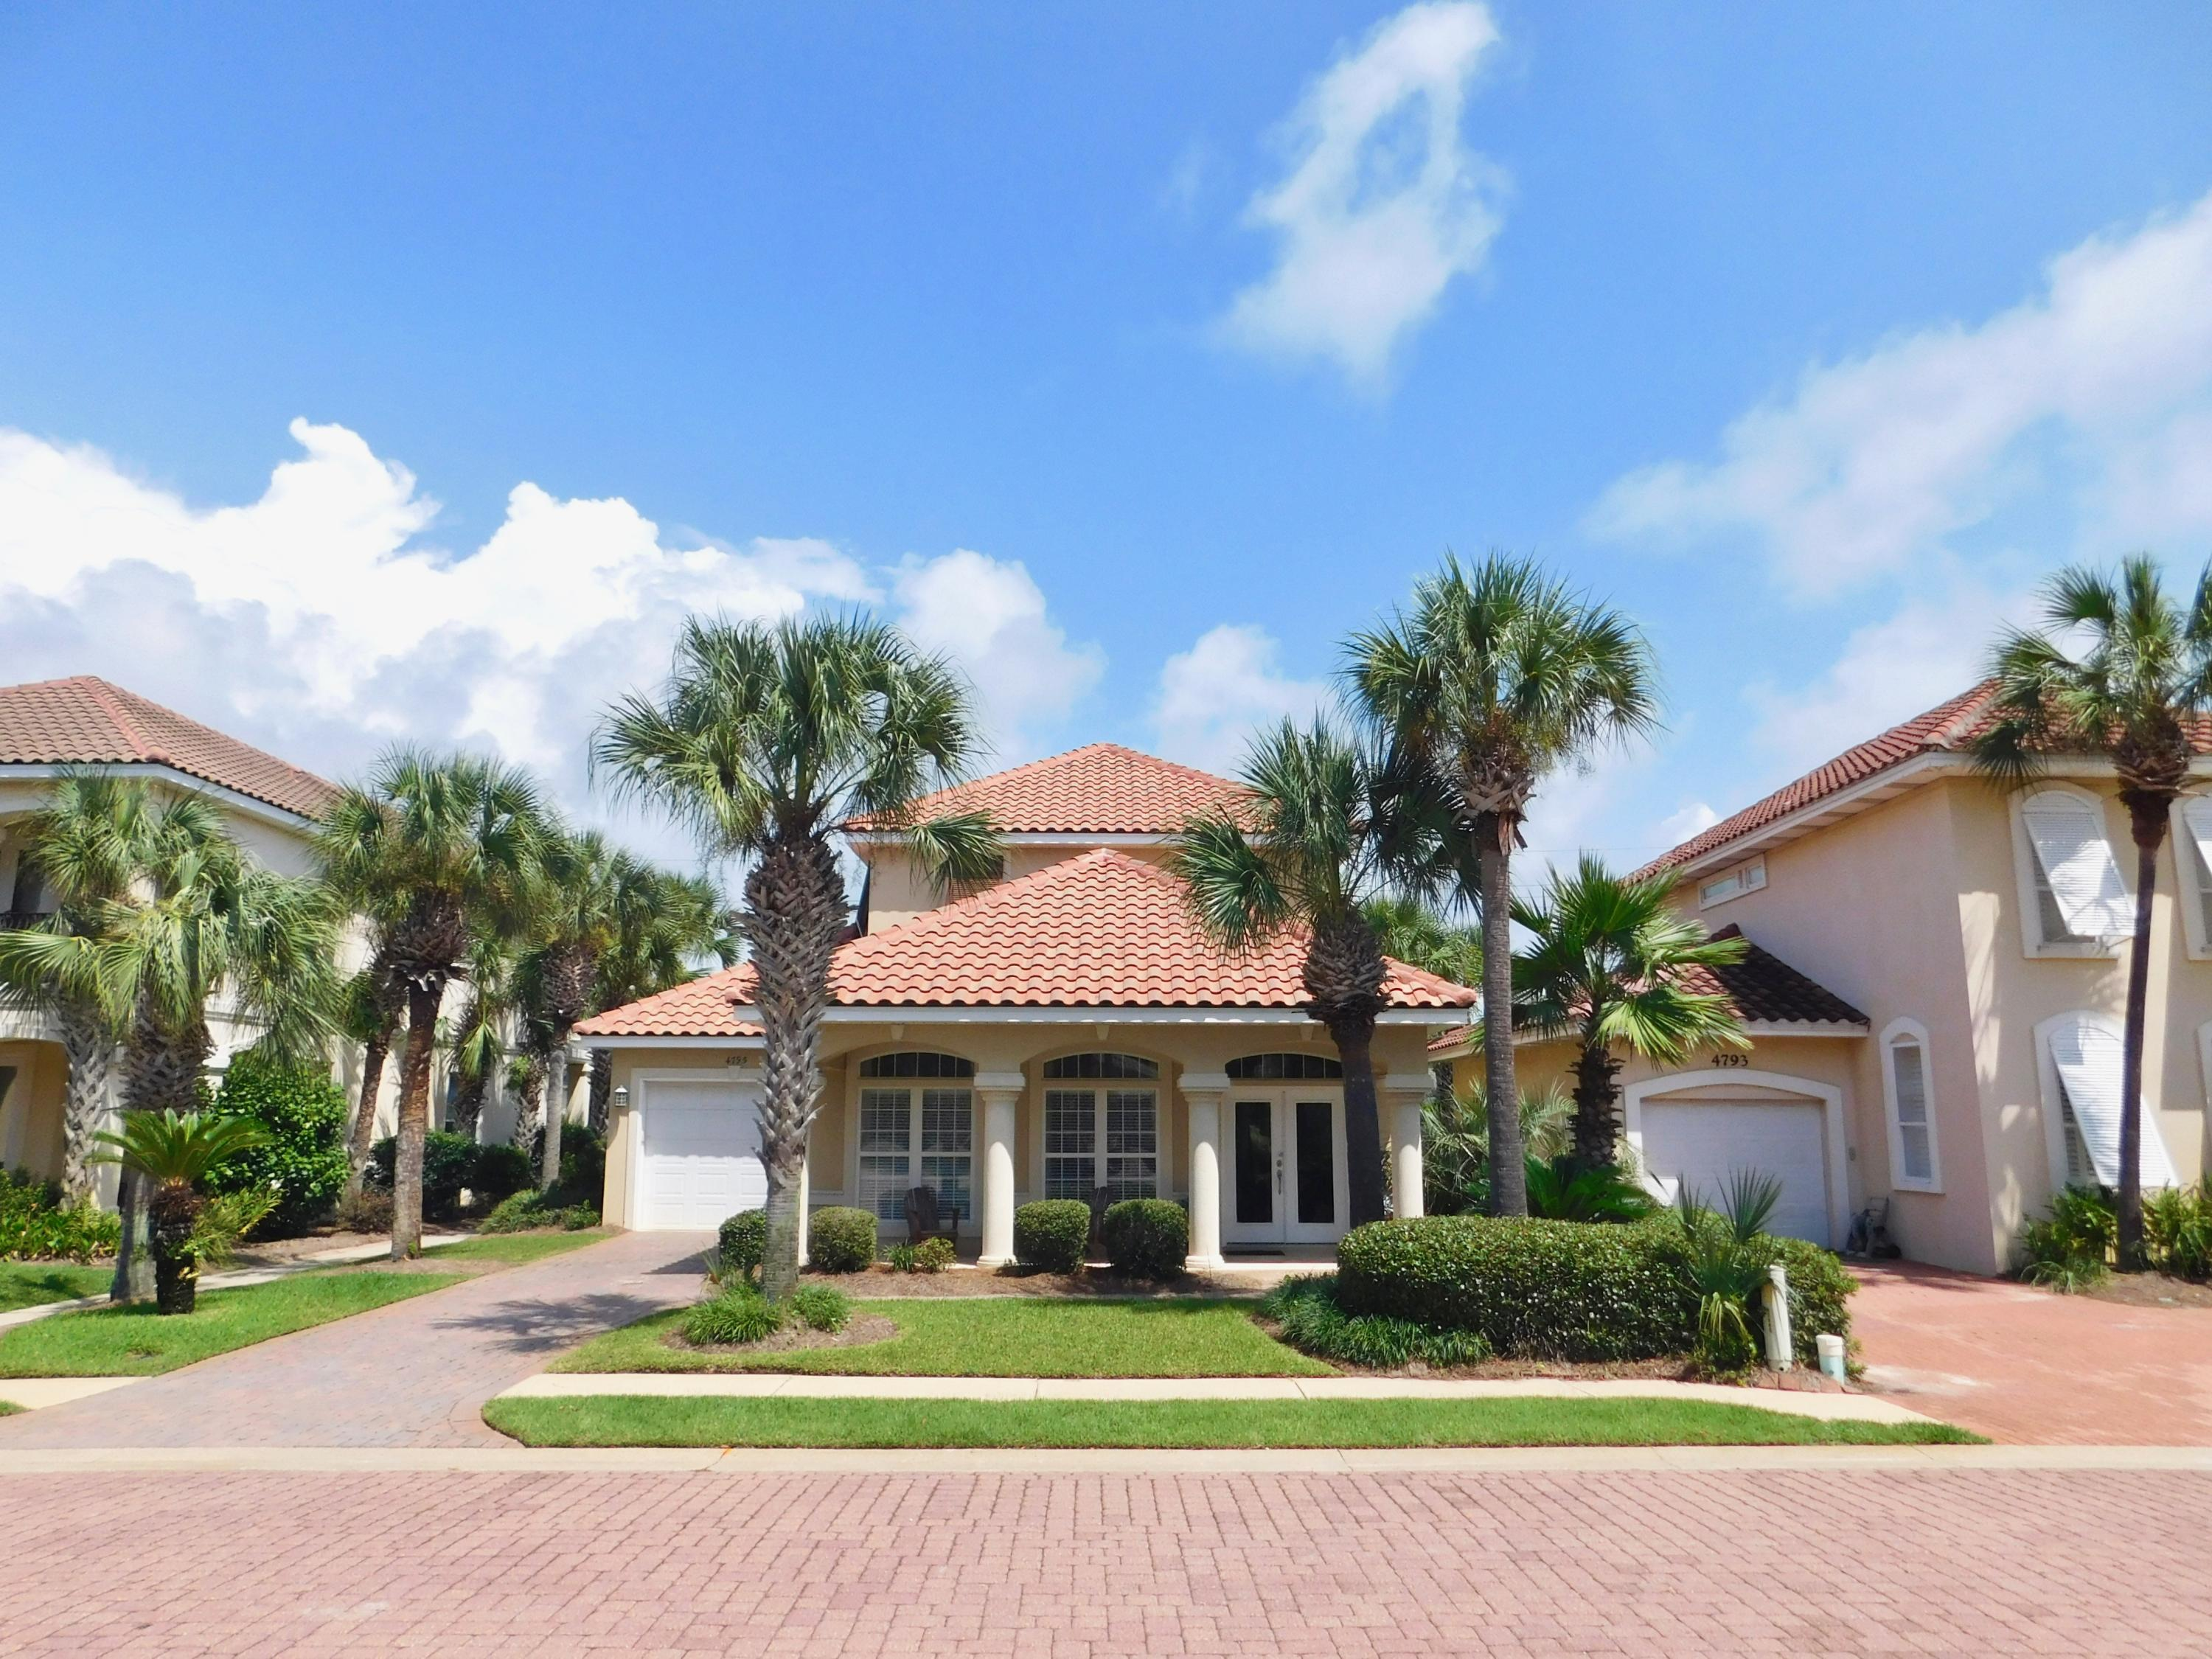 Photo of home for sale at 4795 Bonaire Cay, Destin FL